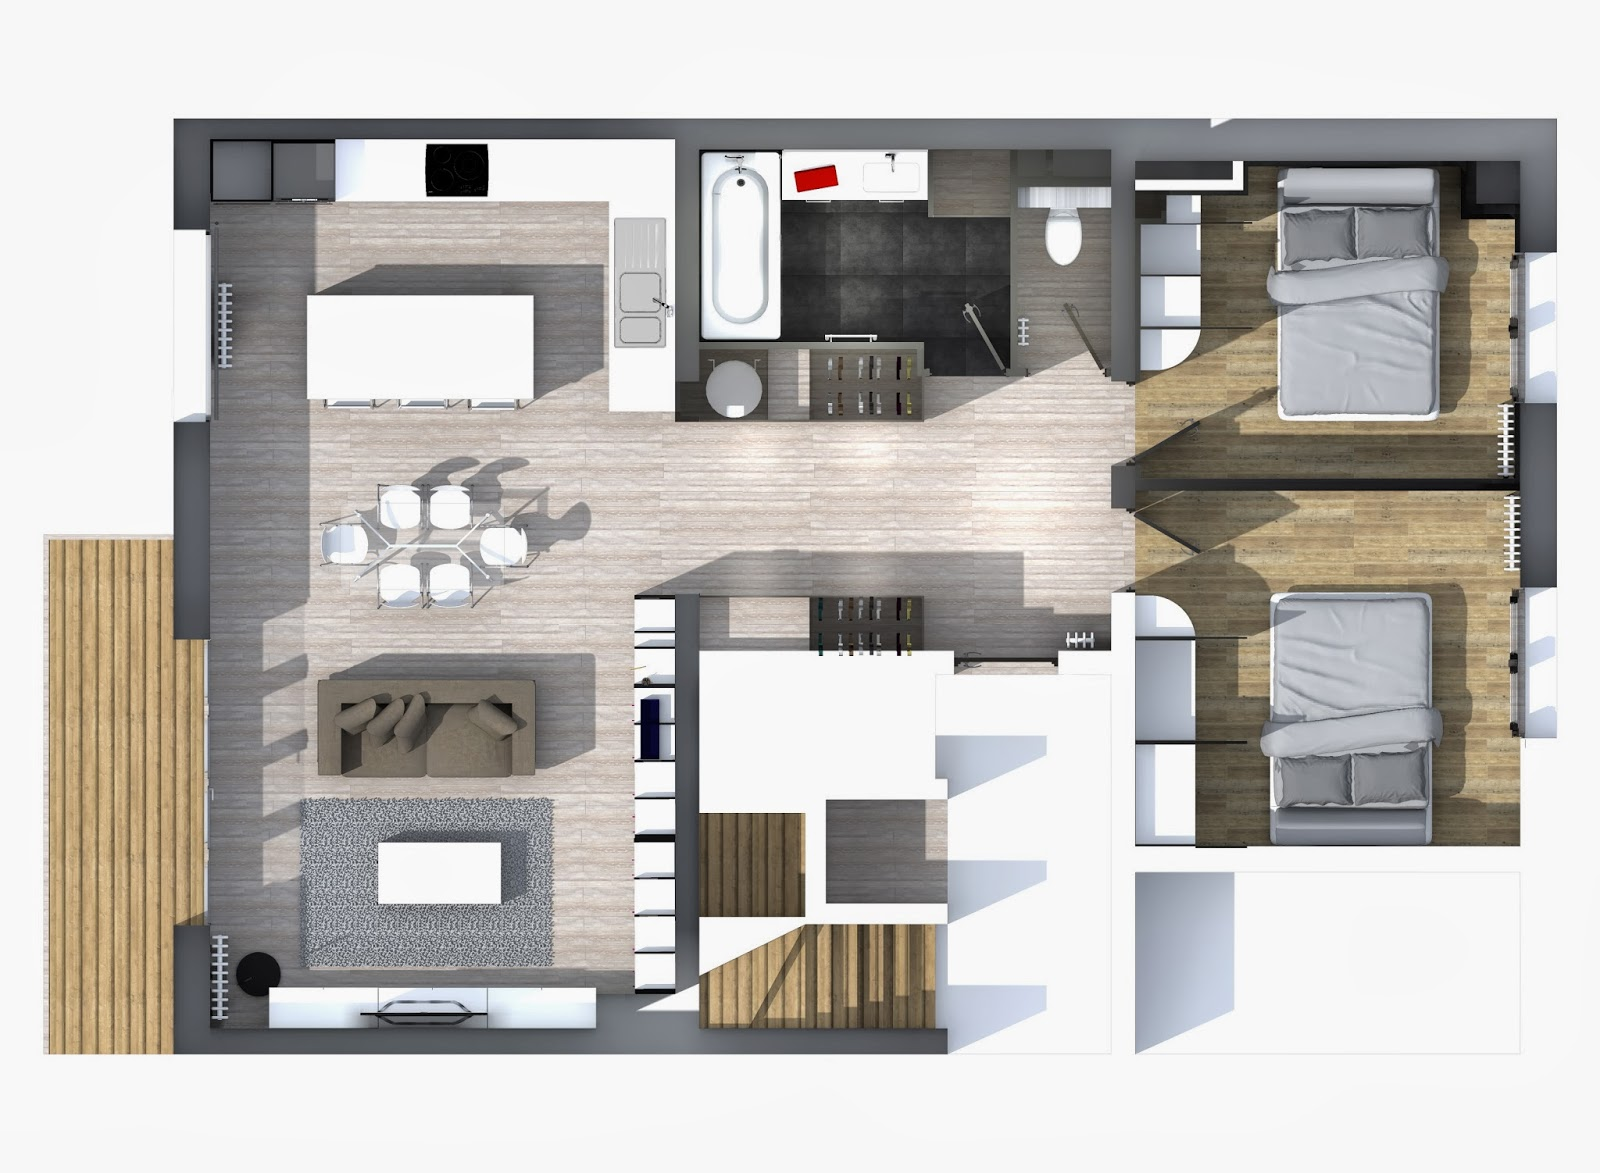 Meuble 3d Cg Architecture Amménagement D 39un Appartement De 80m²